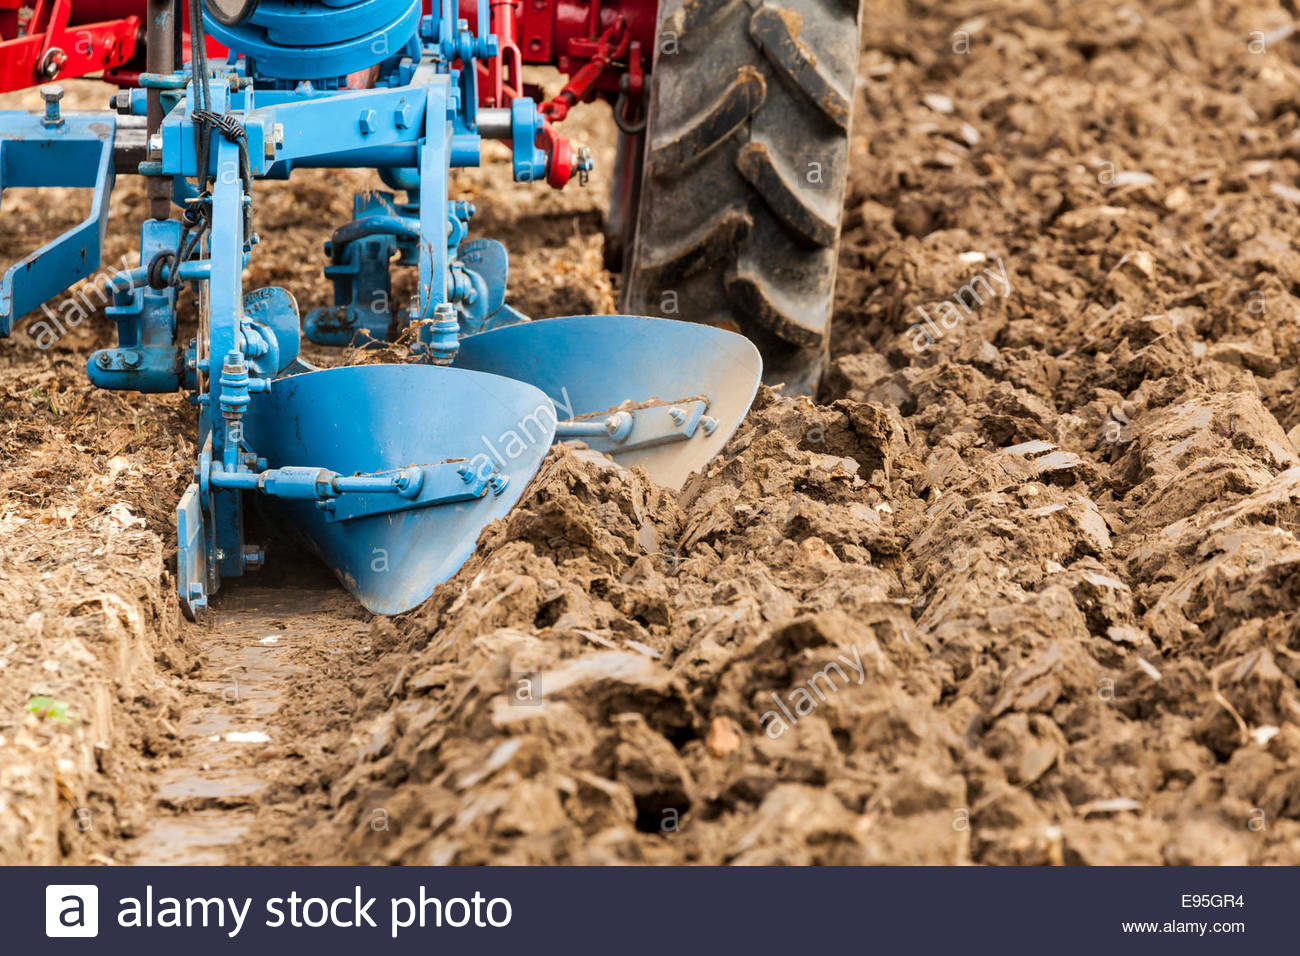 Close up of a tractor ploughing a field - Stock Image